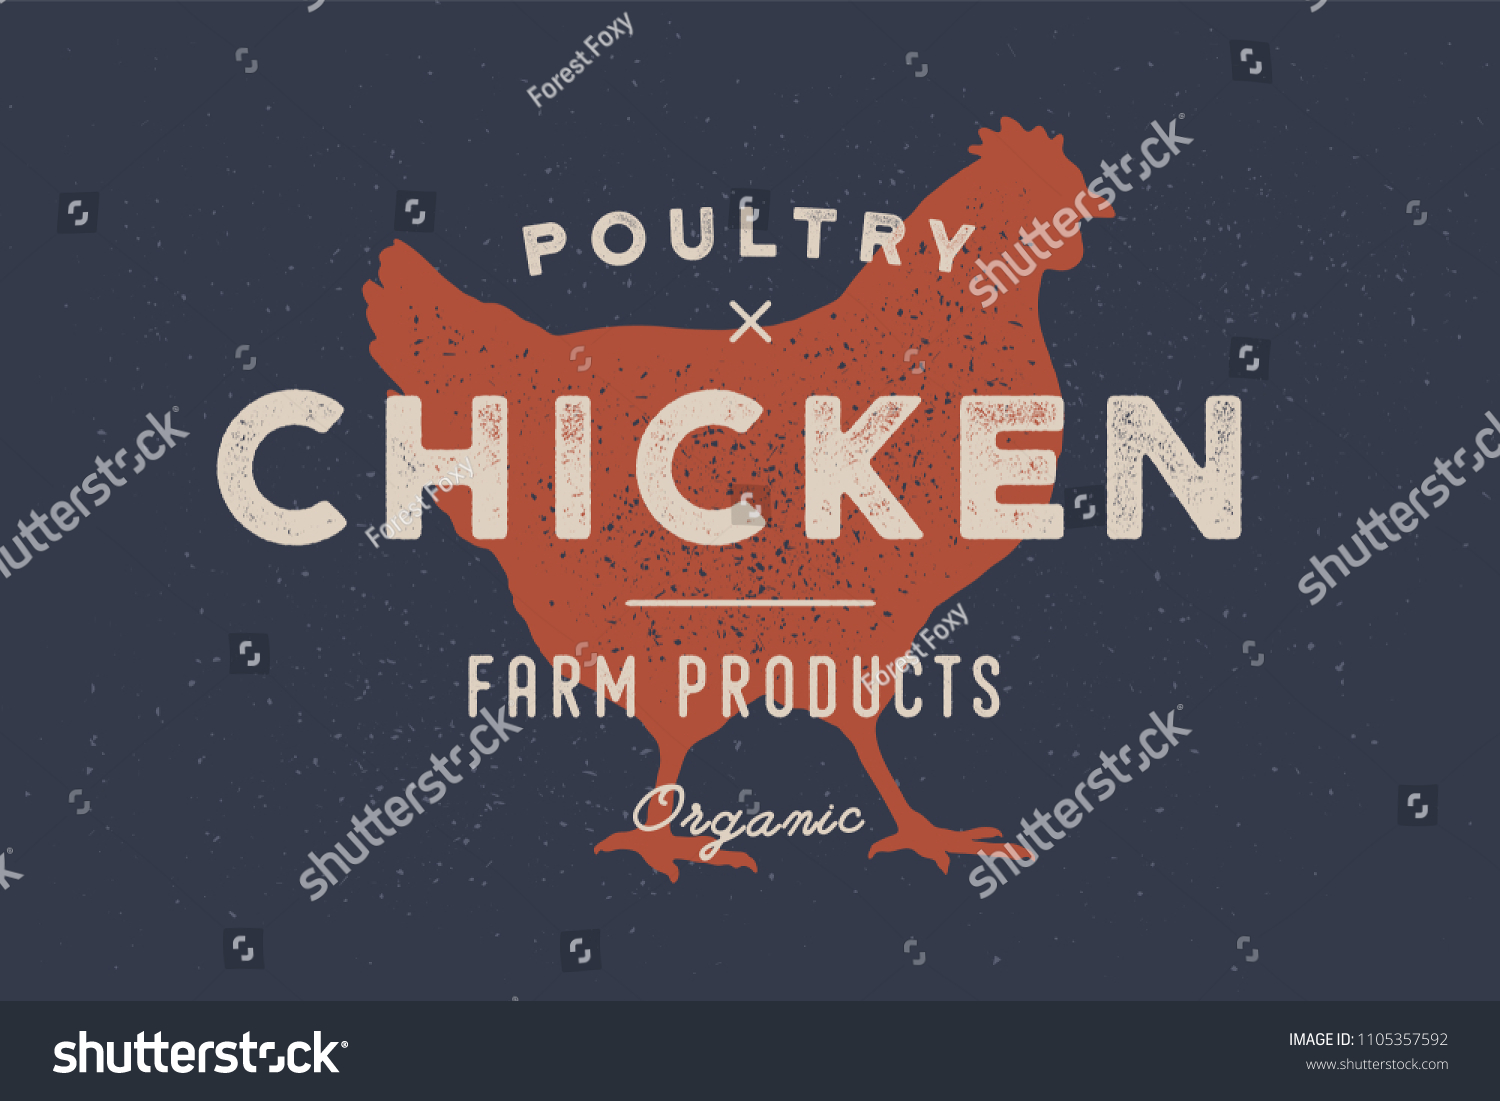 Chicken, poultry. Vintage logo, retro print, poster for Butchery meat shop with text, typography Poultry, Chicken, Farm Products, Organic and chicken silhouette. Logo template. Vector Illustration